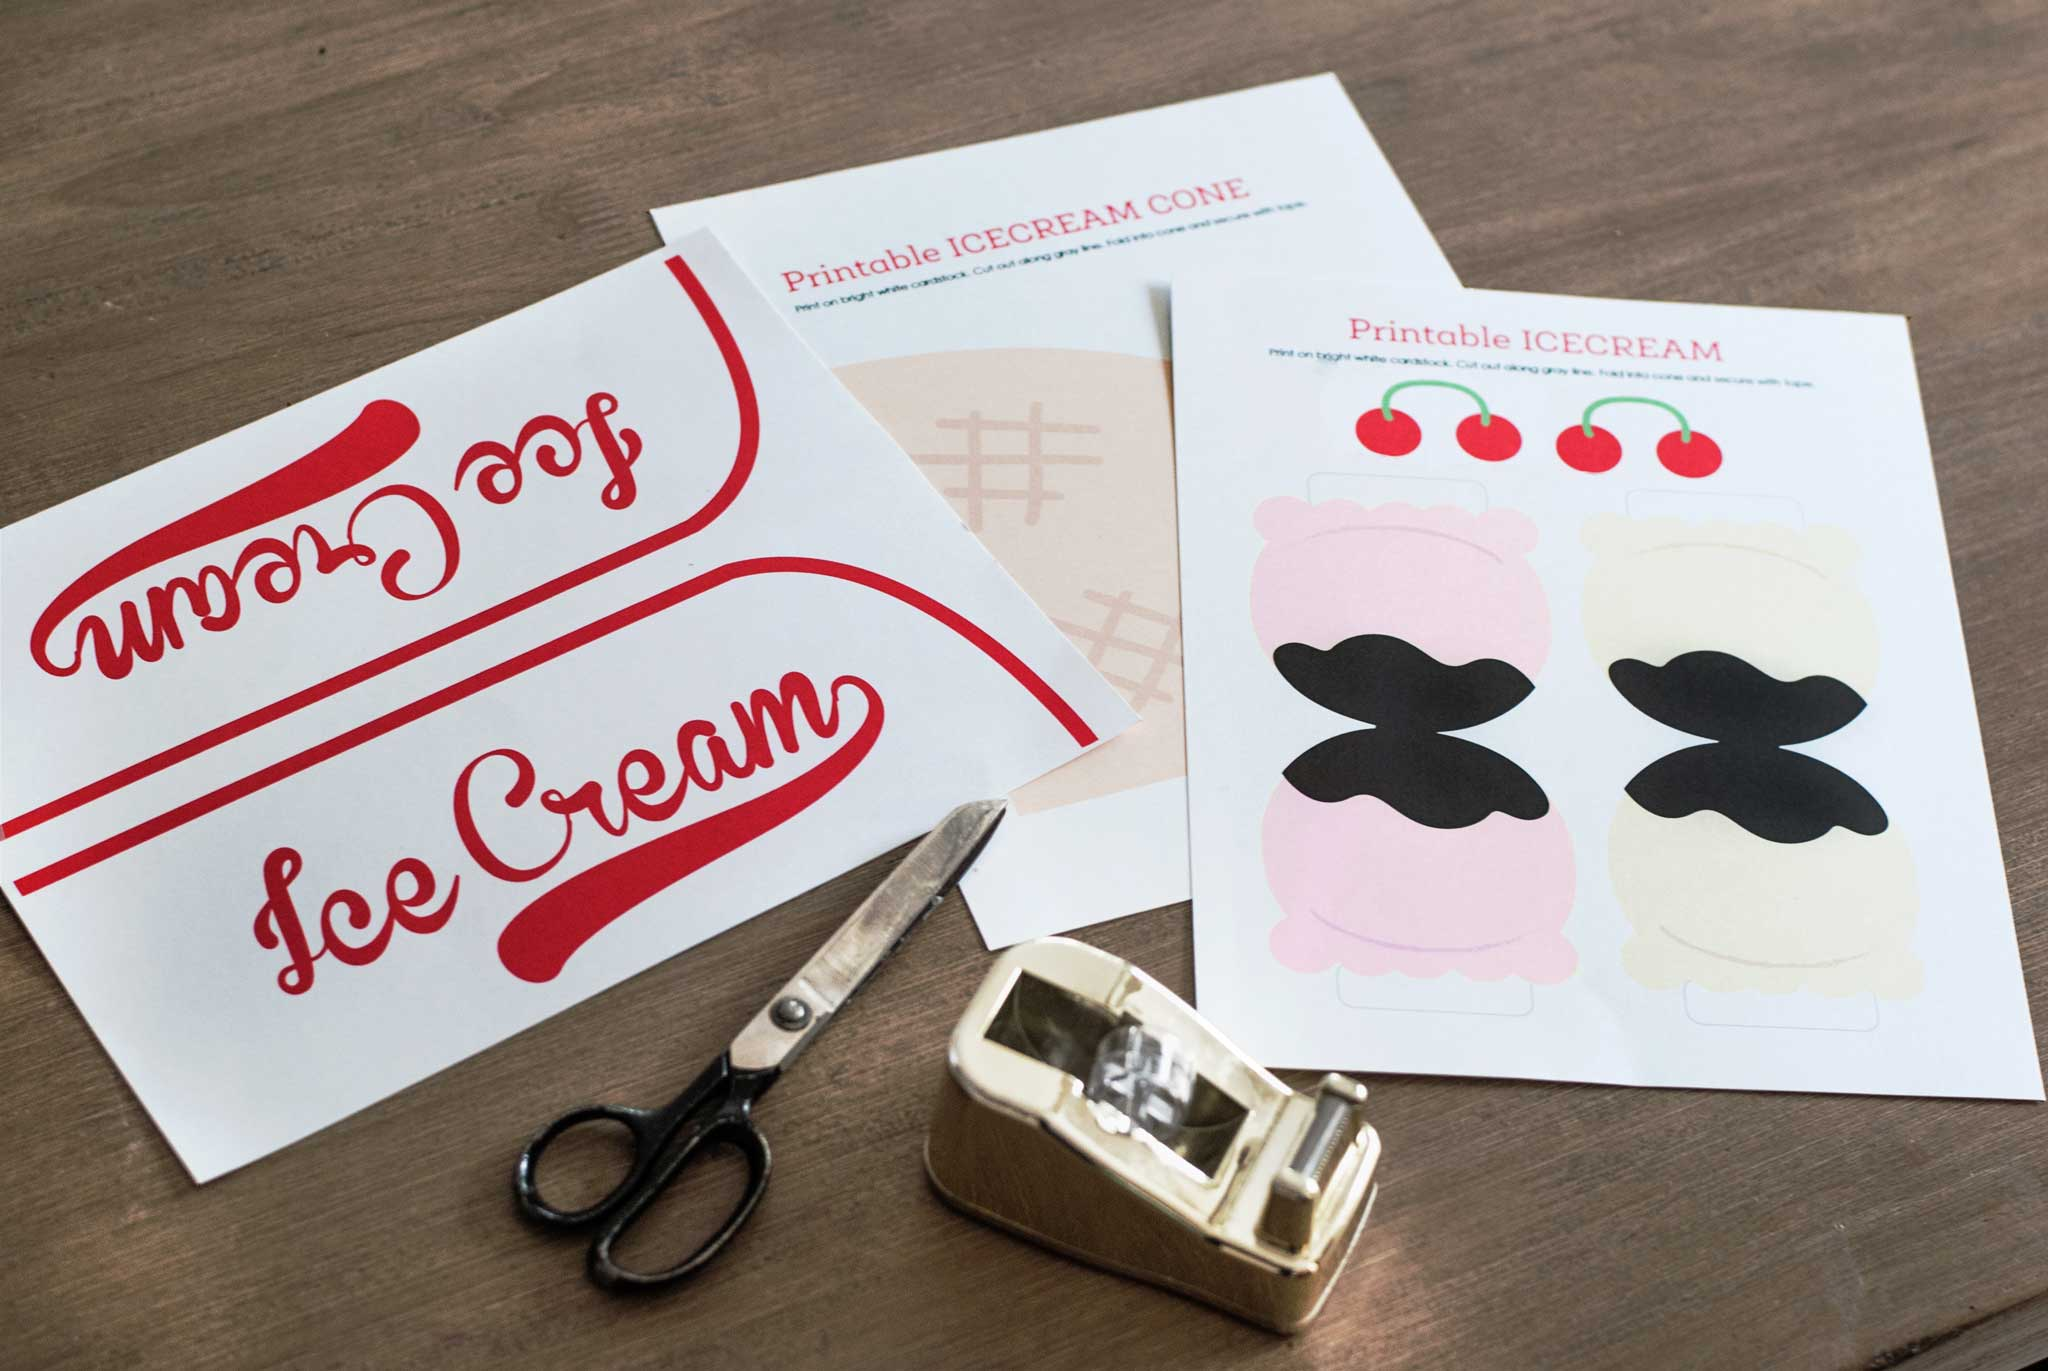 DIY Ice Cream Man Costume Printables